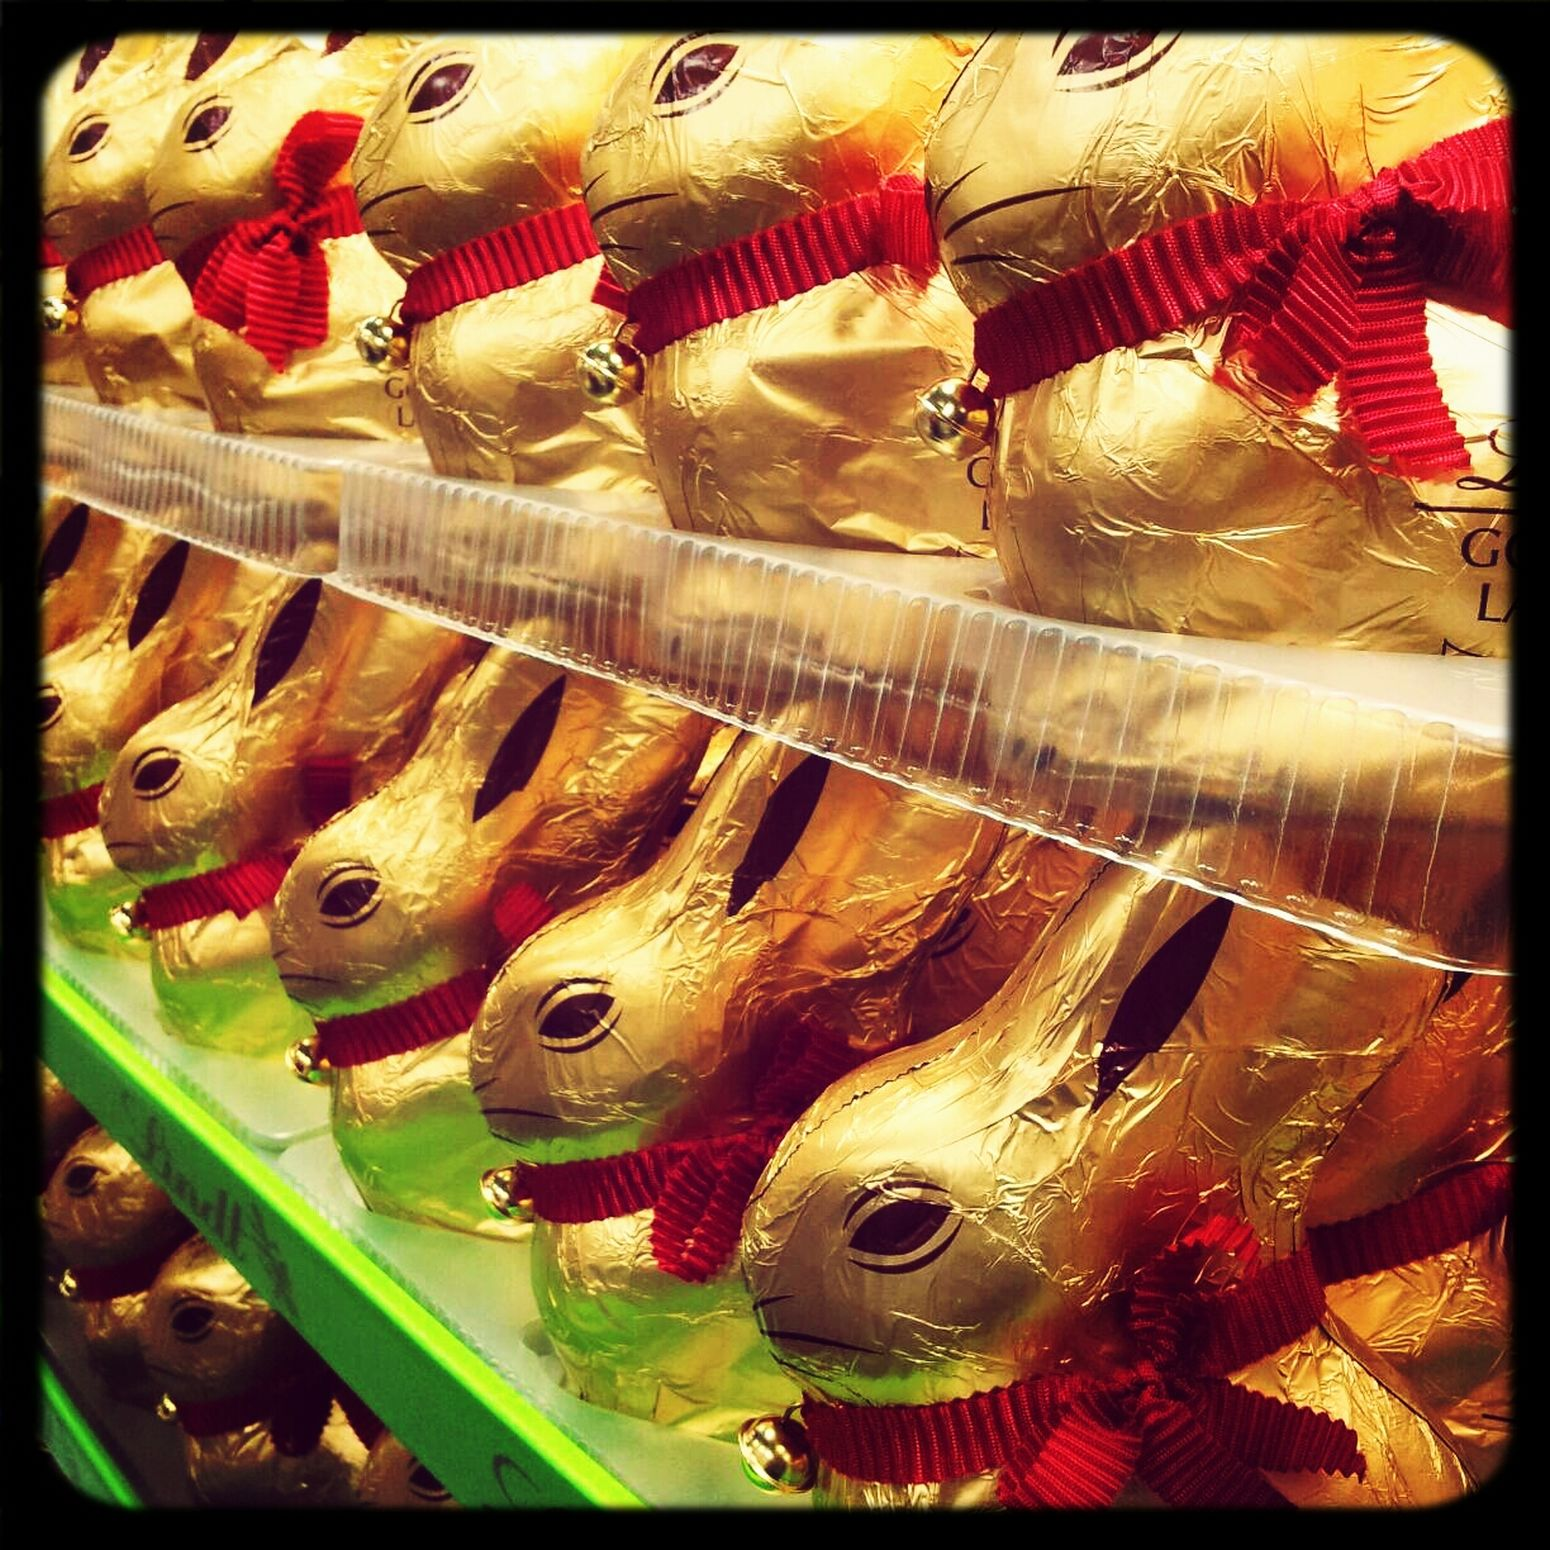 Attacke Happy Easter! Lindt Omg *.*